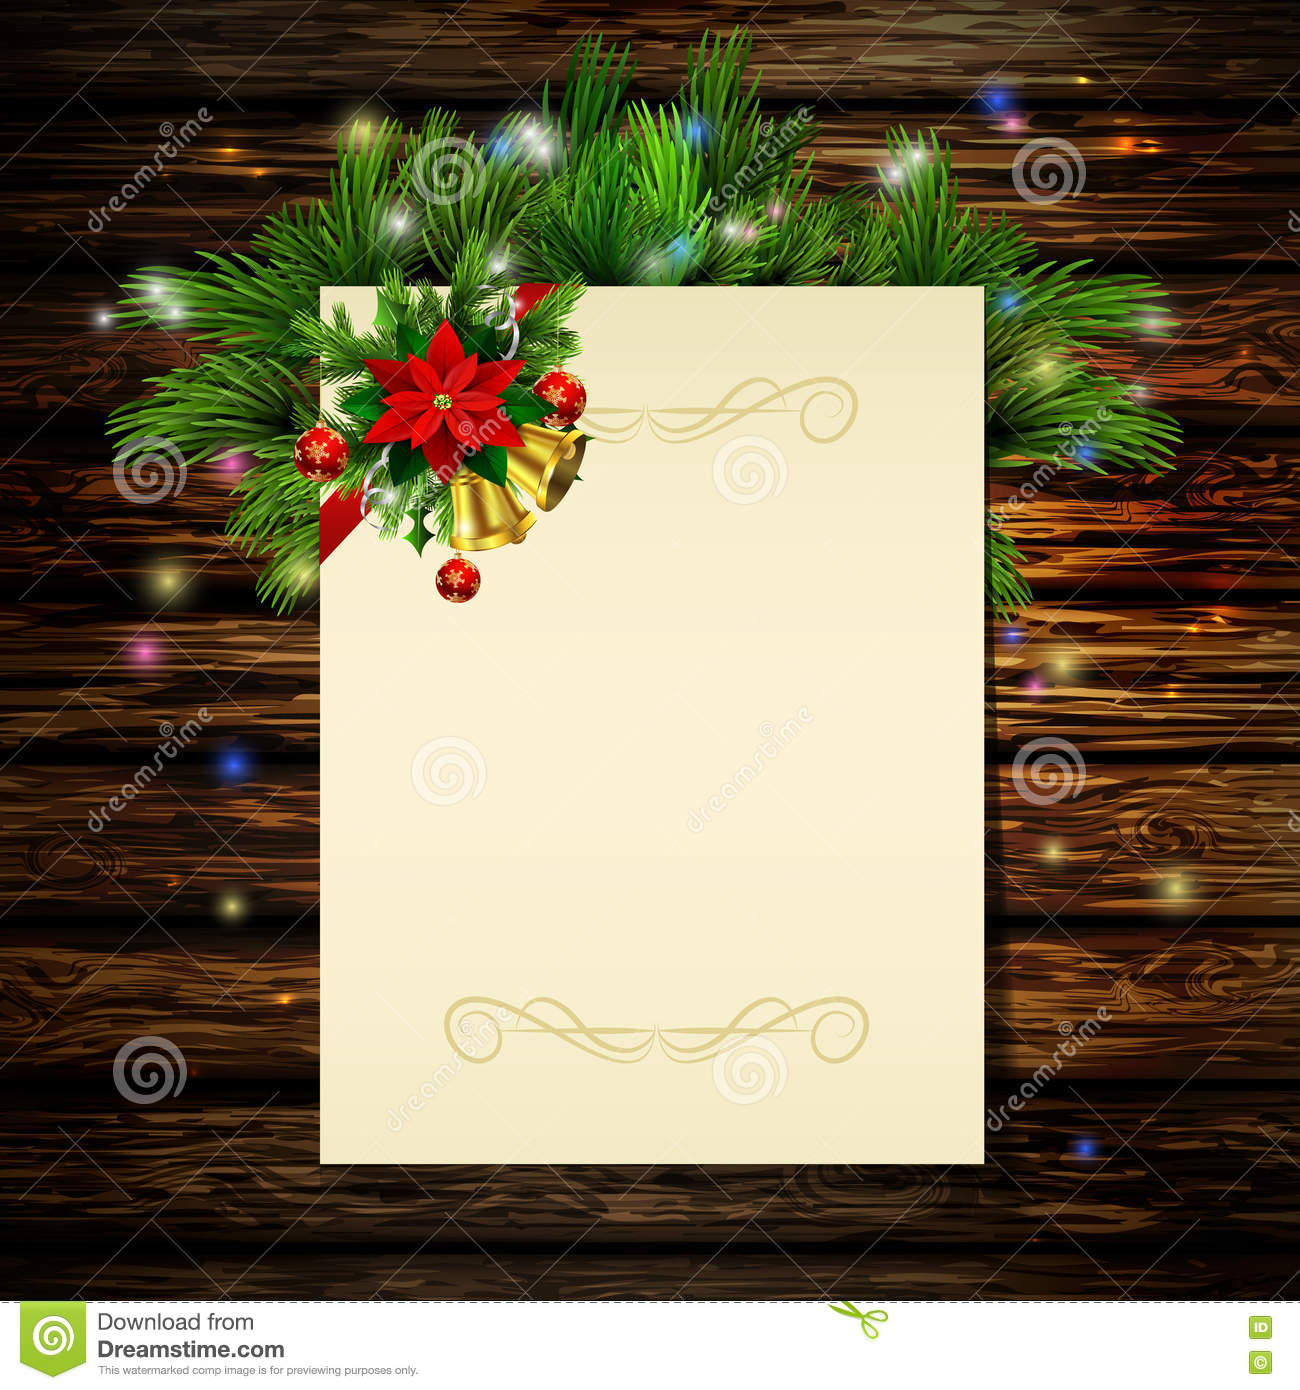 Christmas Background With Tree Stock Vector - Illustration of mail ...